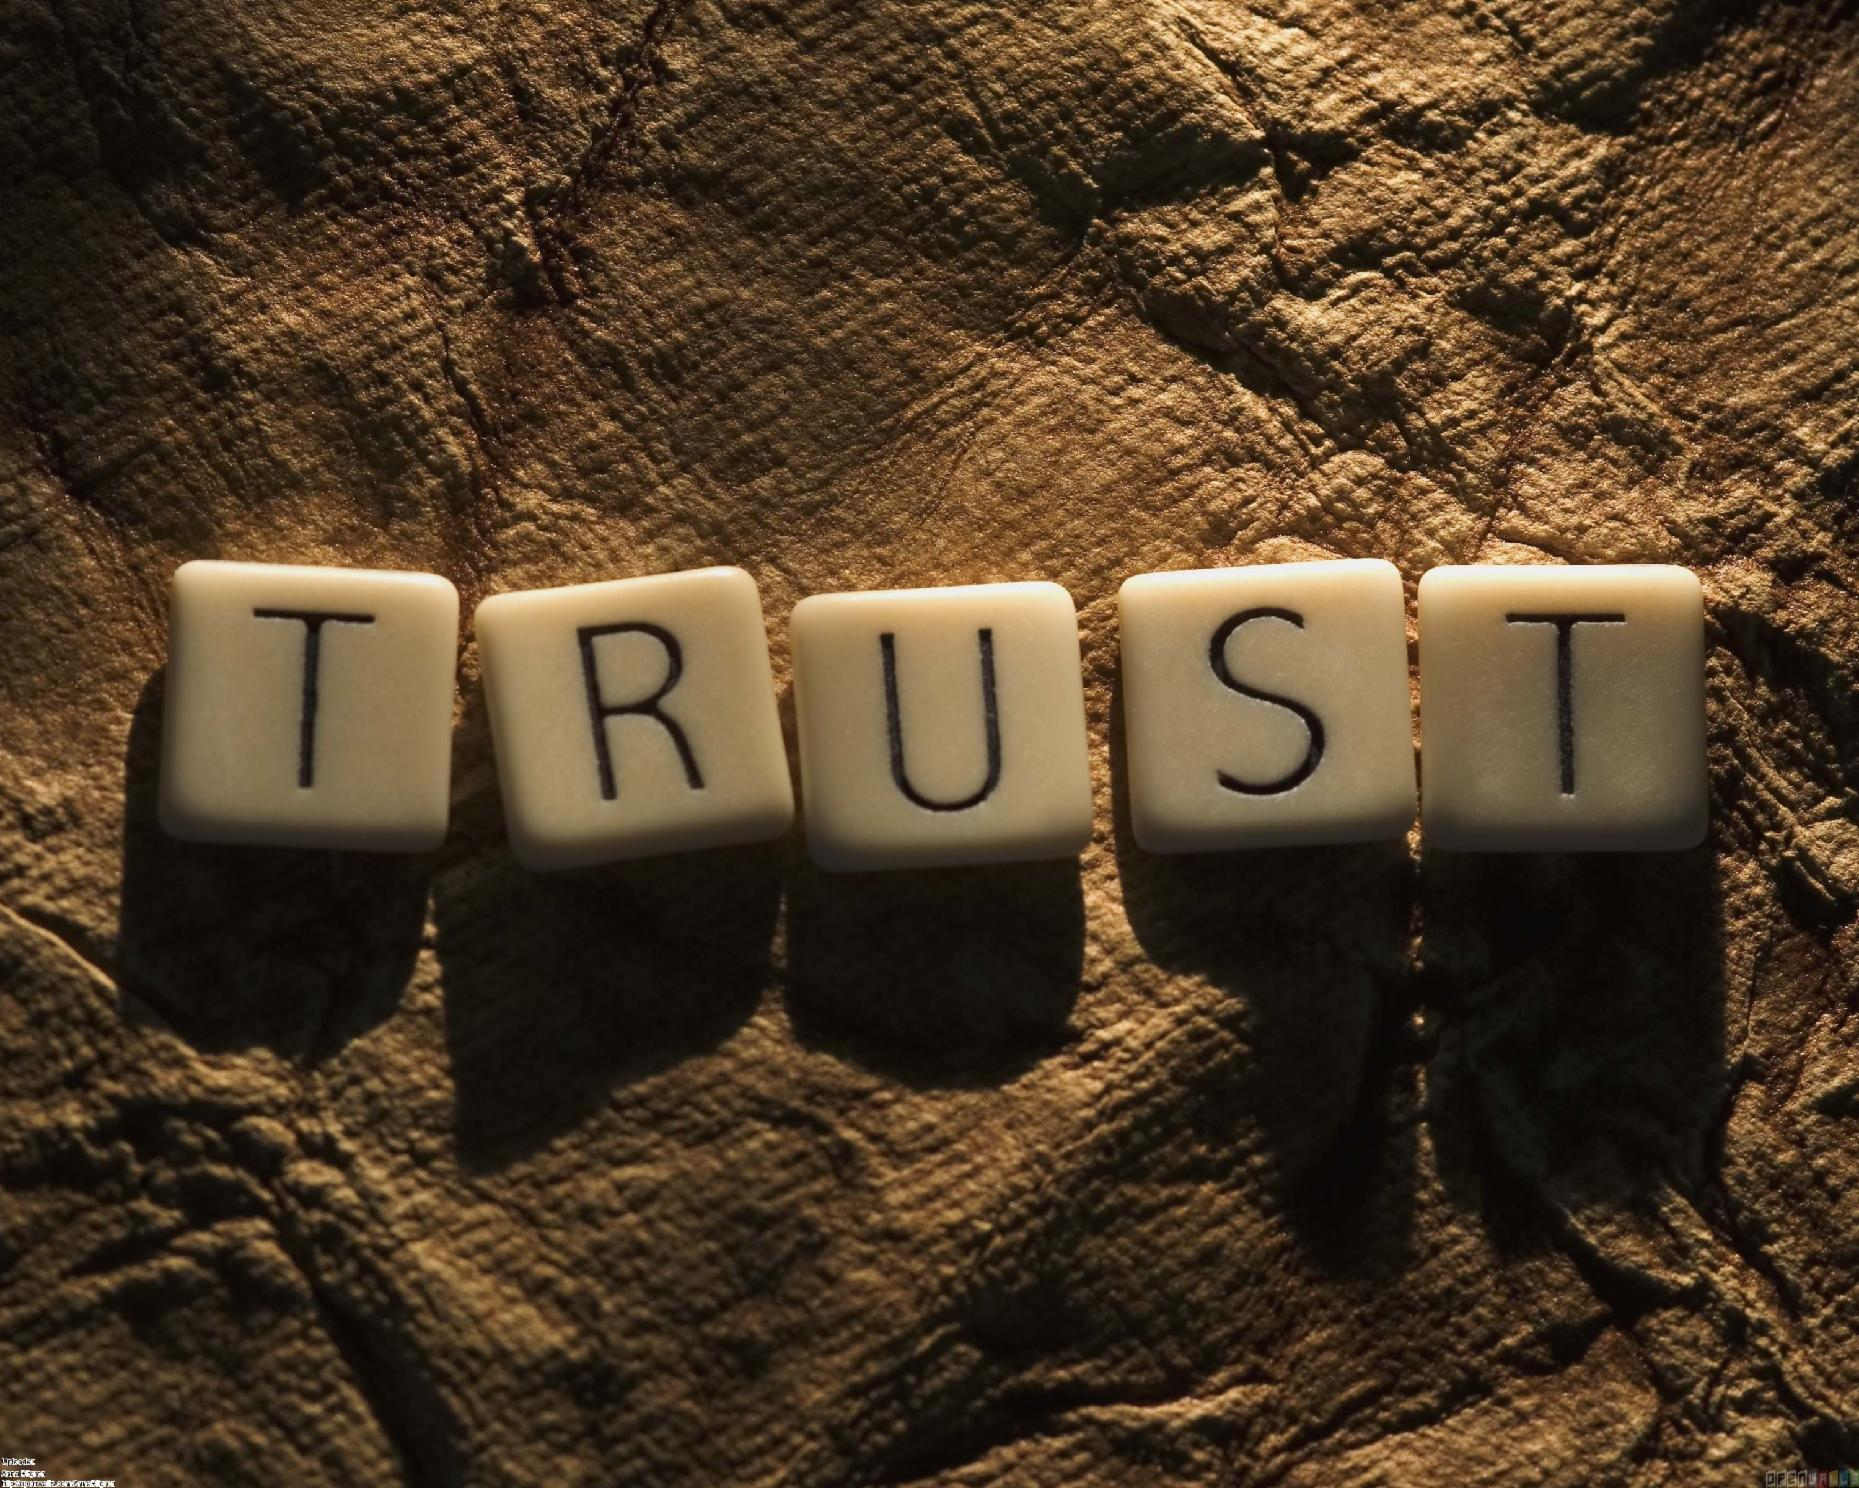 Do you trust yourself?